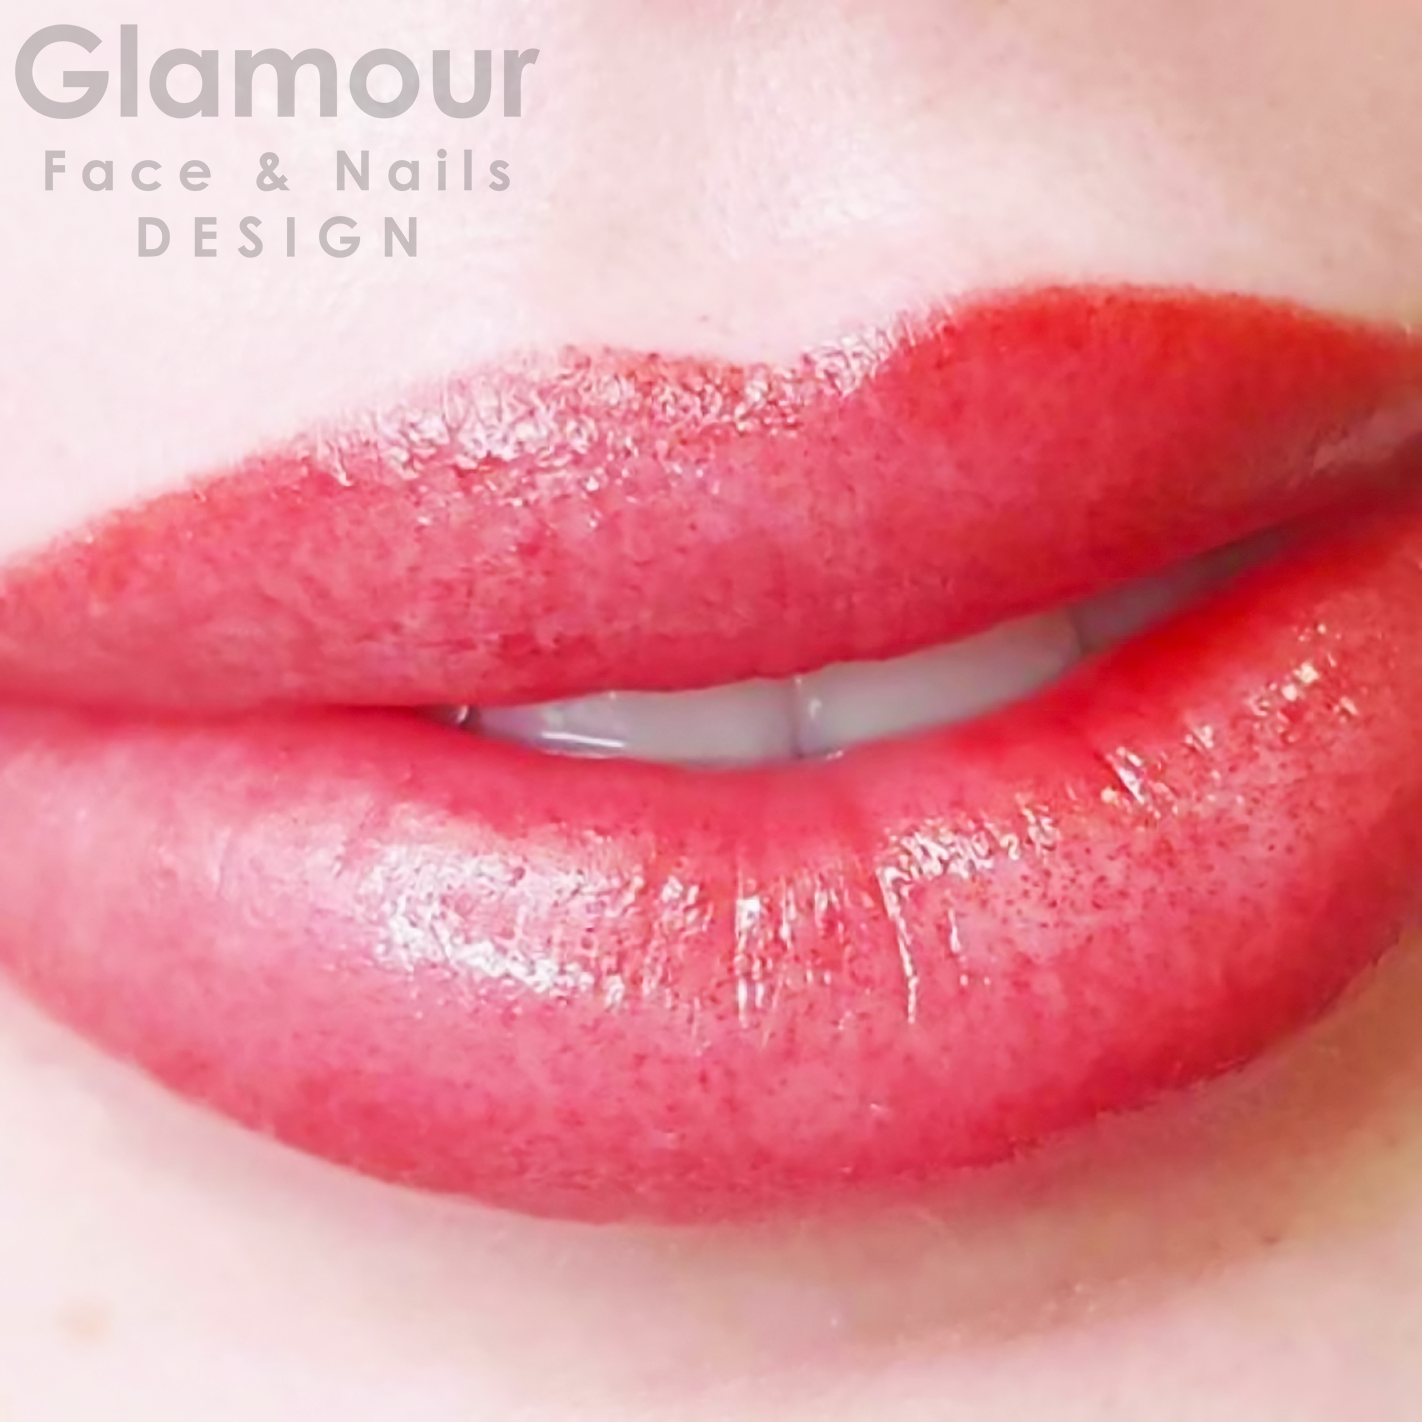 Maquillage Permanent - Glamour Design Marrakech